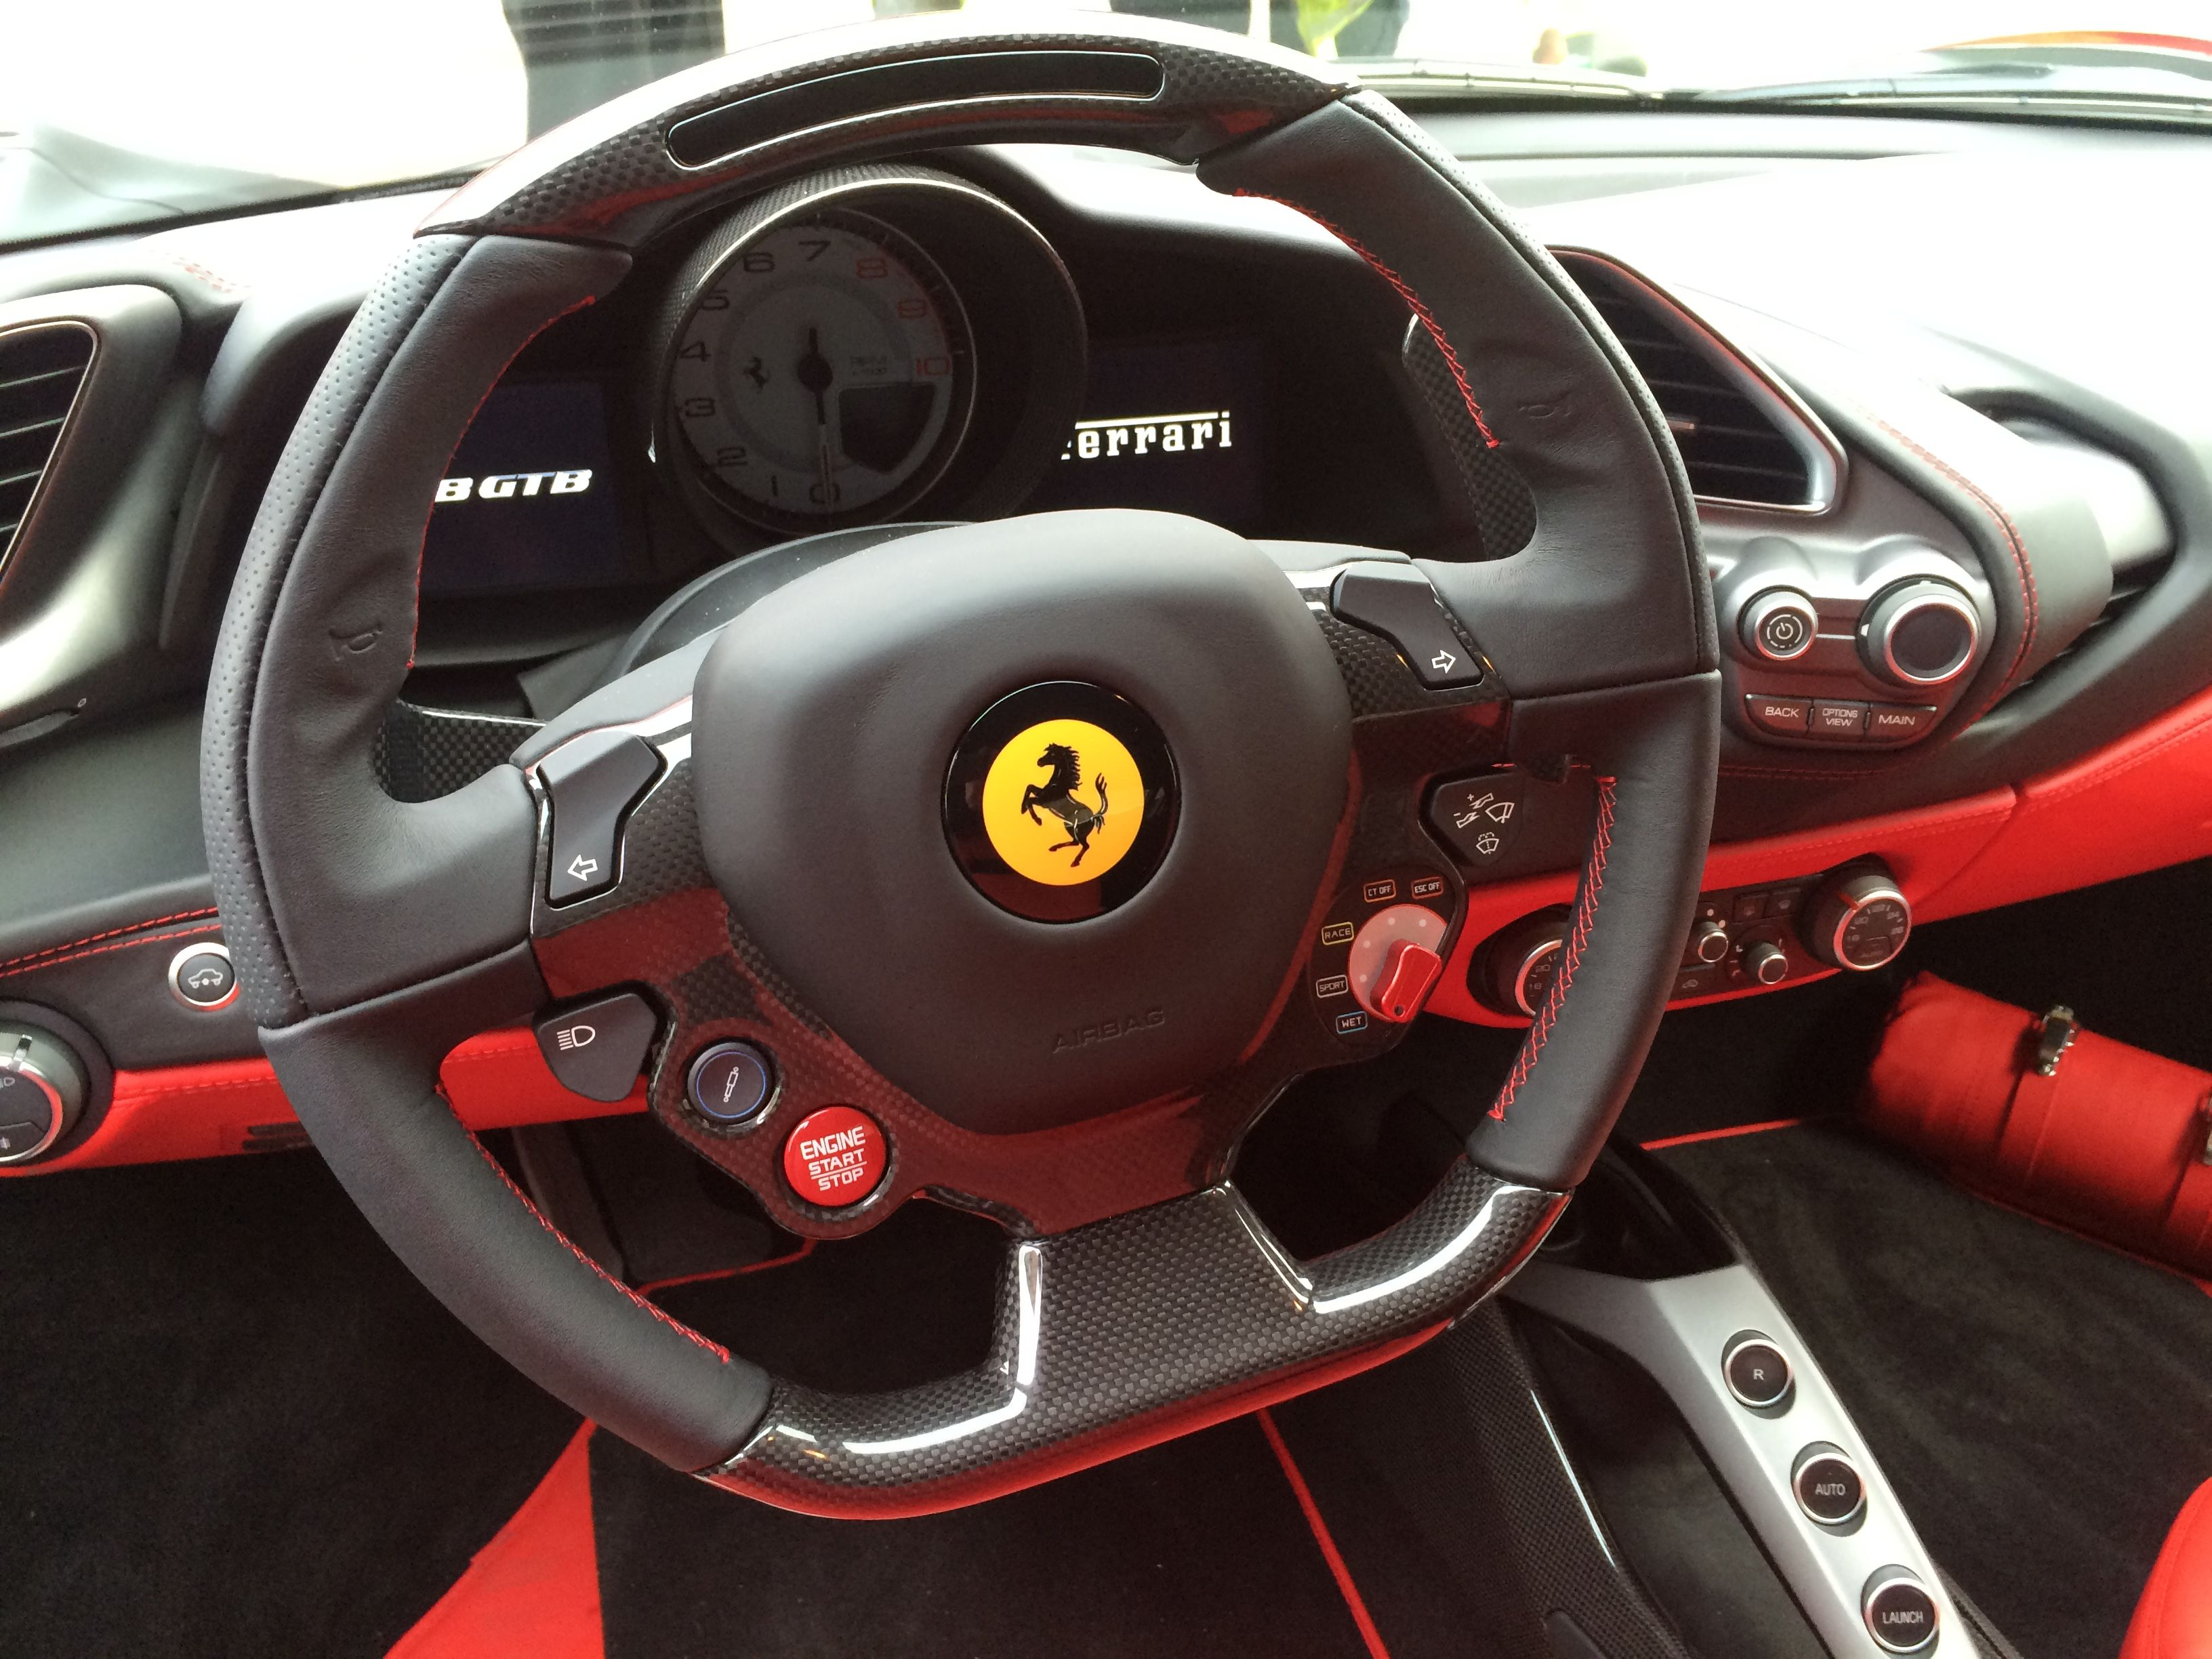 One of the first ferrari 488 supplied by scuderia automotive in the uk